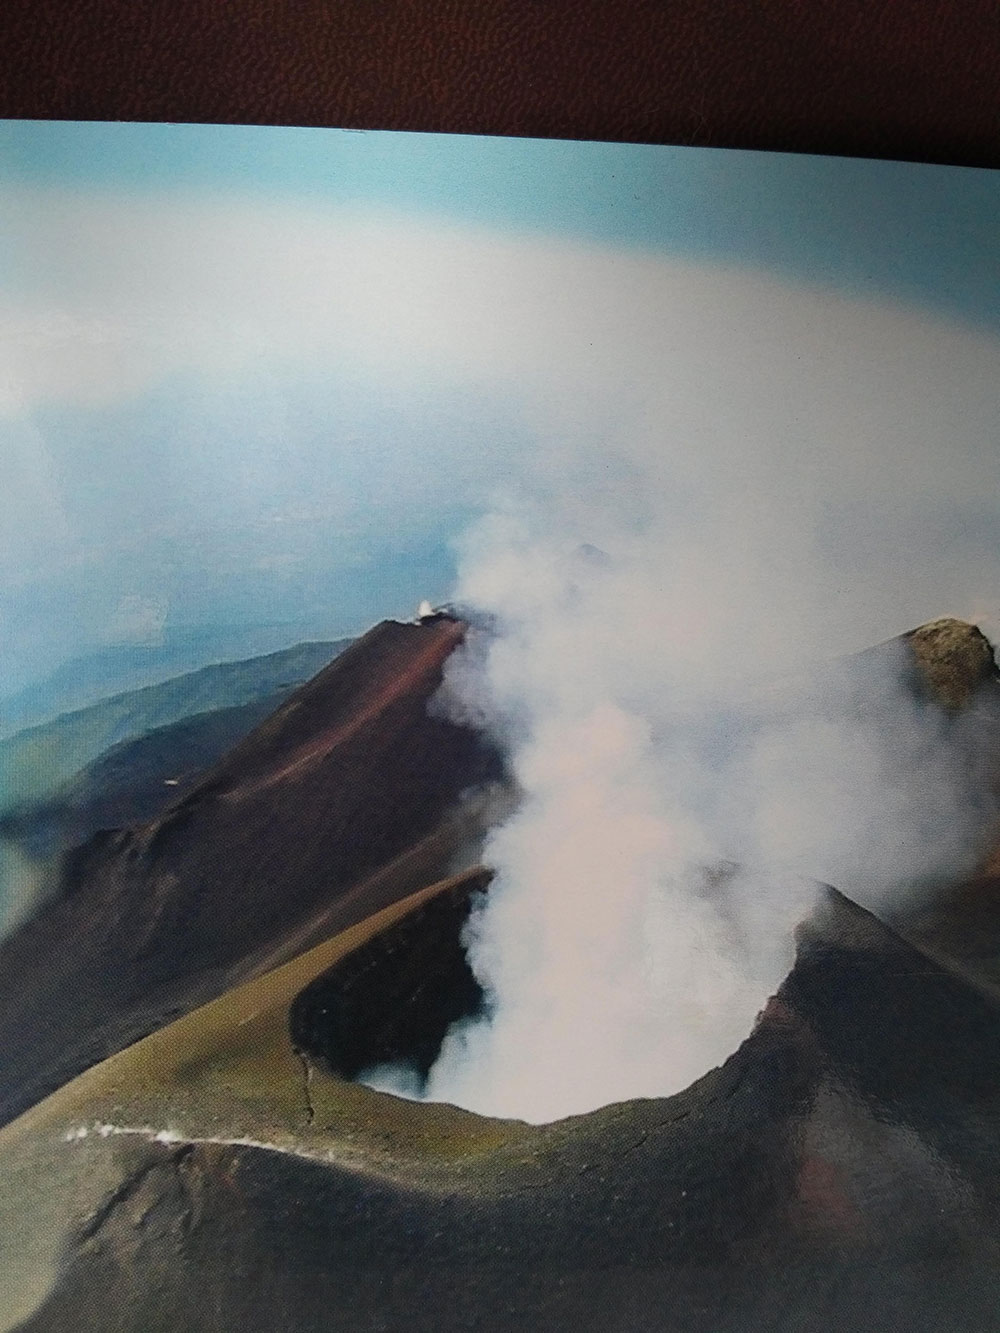 We didn't make it all the way to the top of Mount Etna, but this postcard shows what we might have seen if we had!